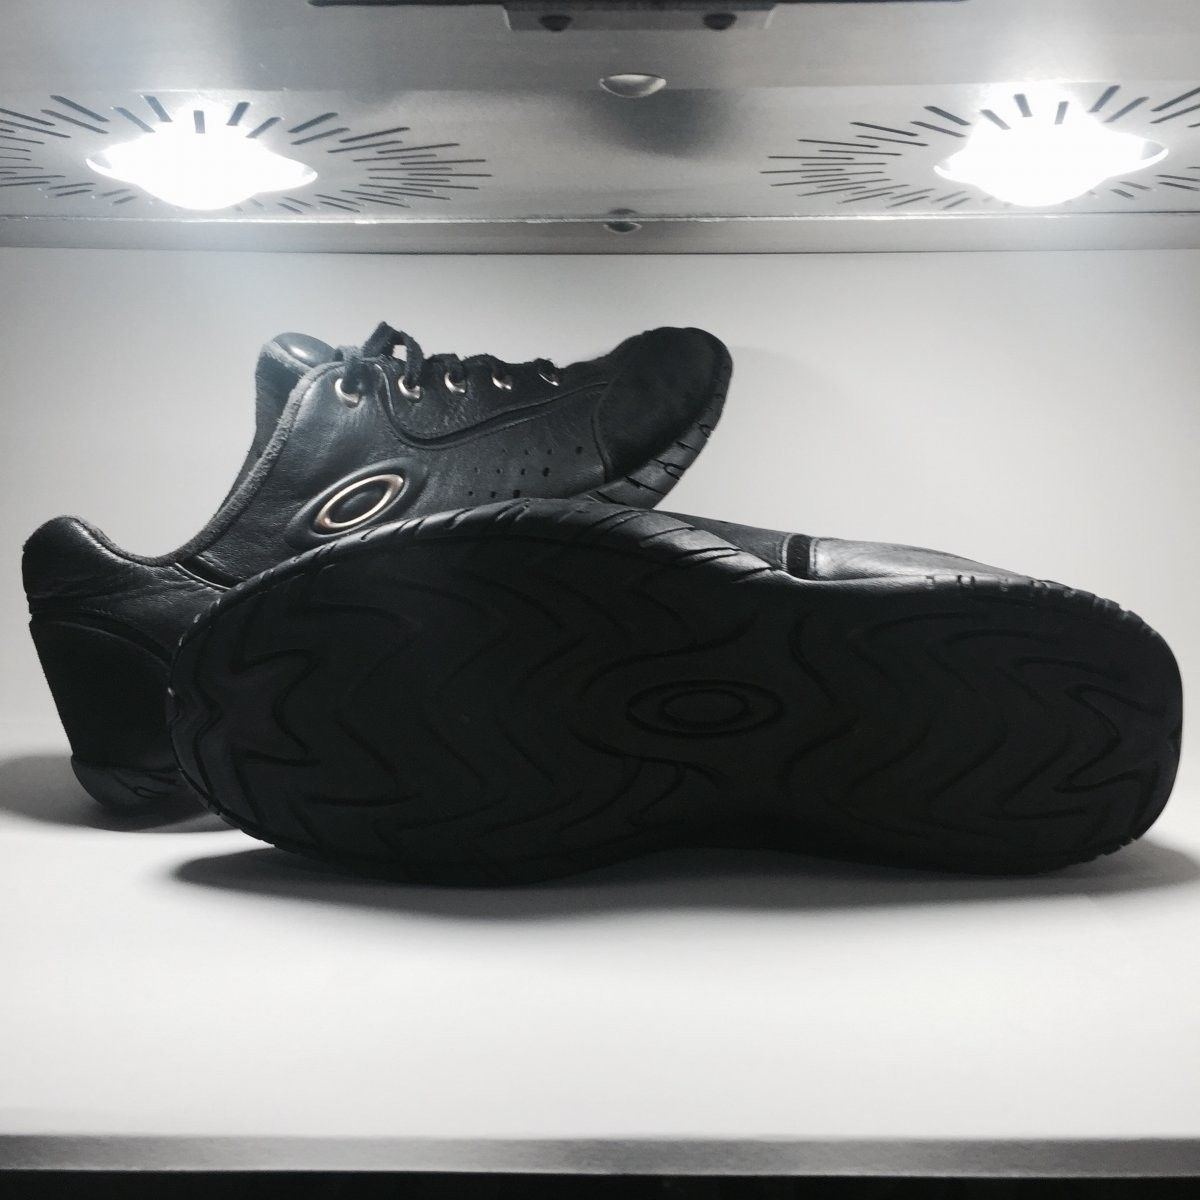 Oakley Shoes Size 12.5 Original Rip Cords Black/Chrome - Oakley Rip Cord Black Chrome (1).jpg